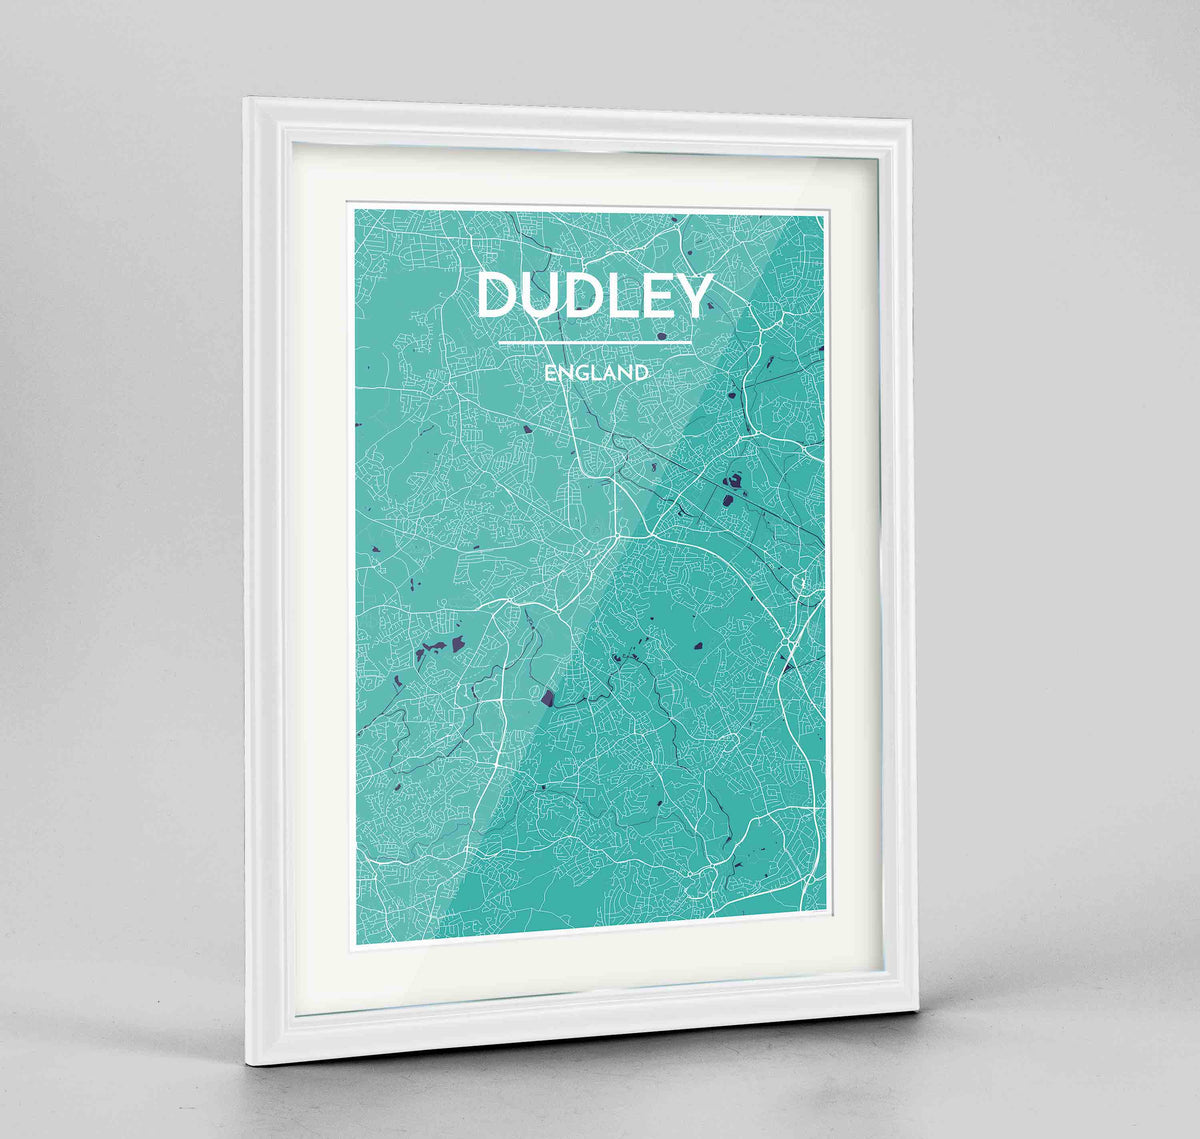 "Framed Dudley Map Art Print 24x36"" Traditional White frame Point Two Design Group"